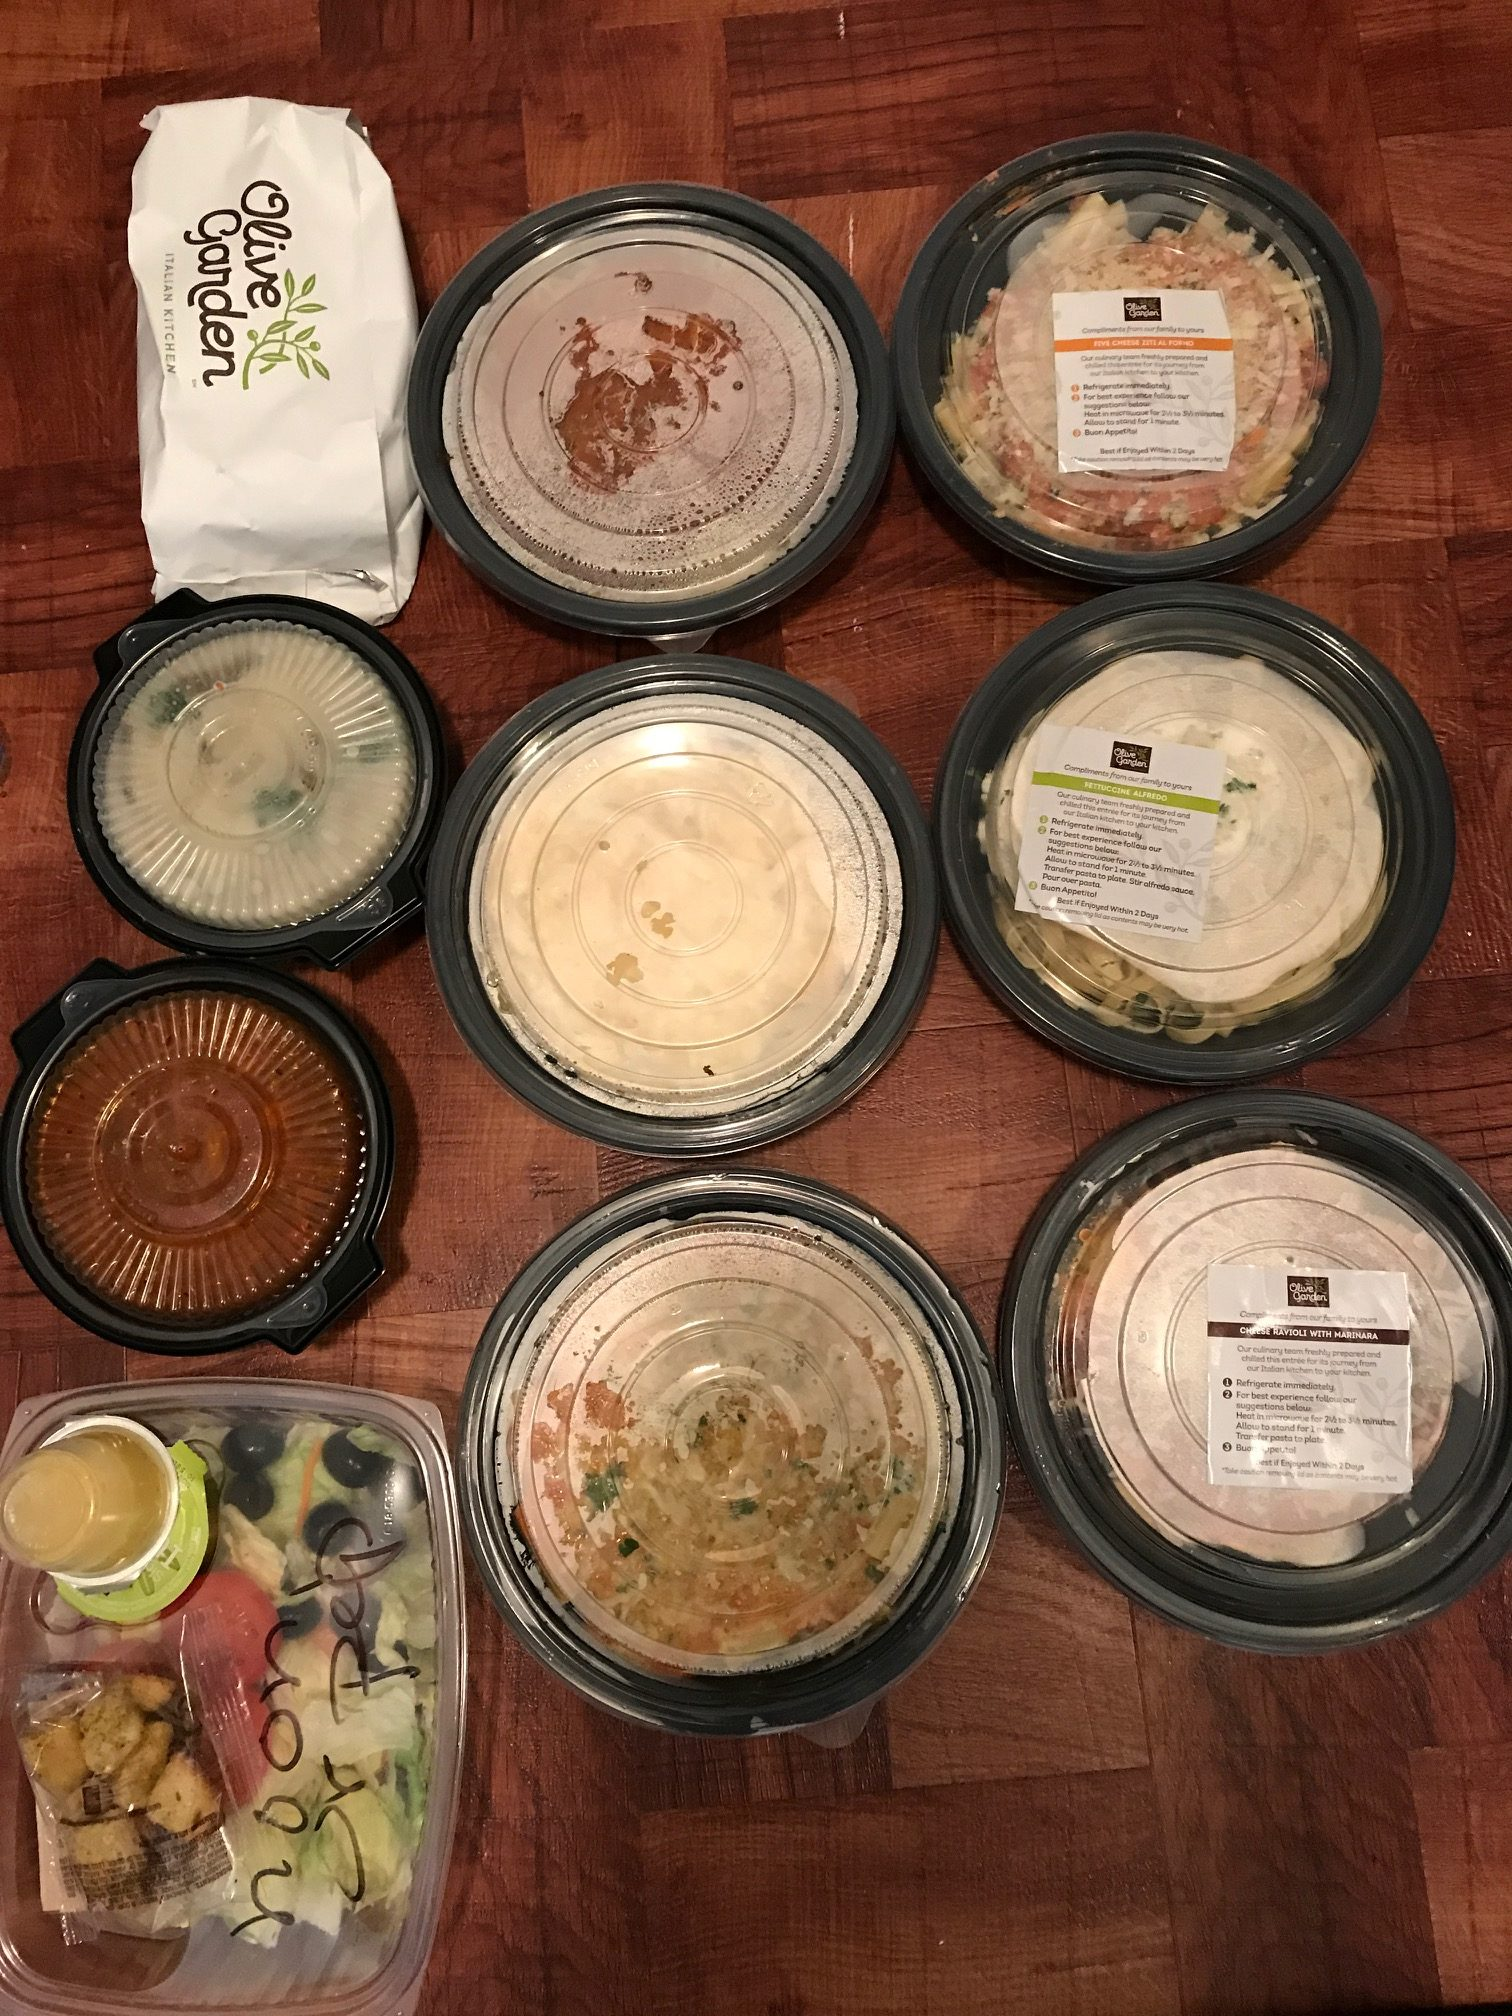 Olive Garden: How Nina Scored 6 Entrees, 3 Soups/Salads, + ...